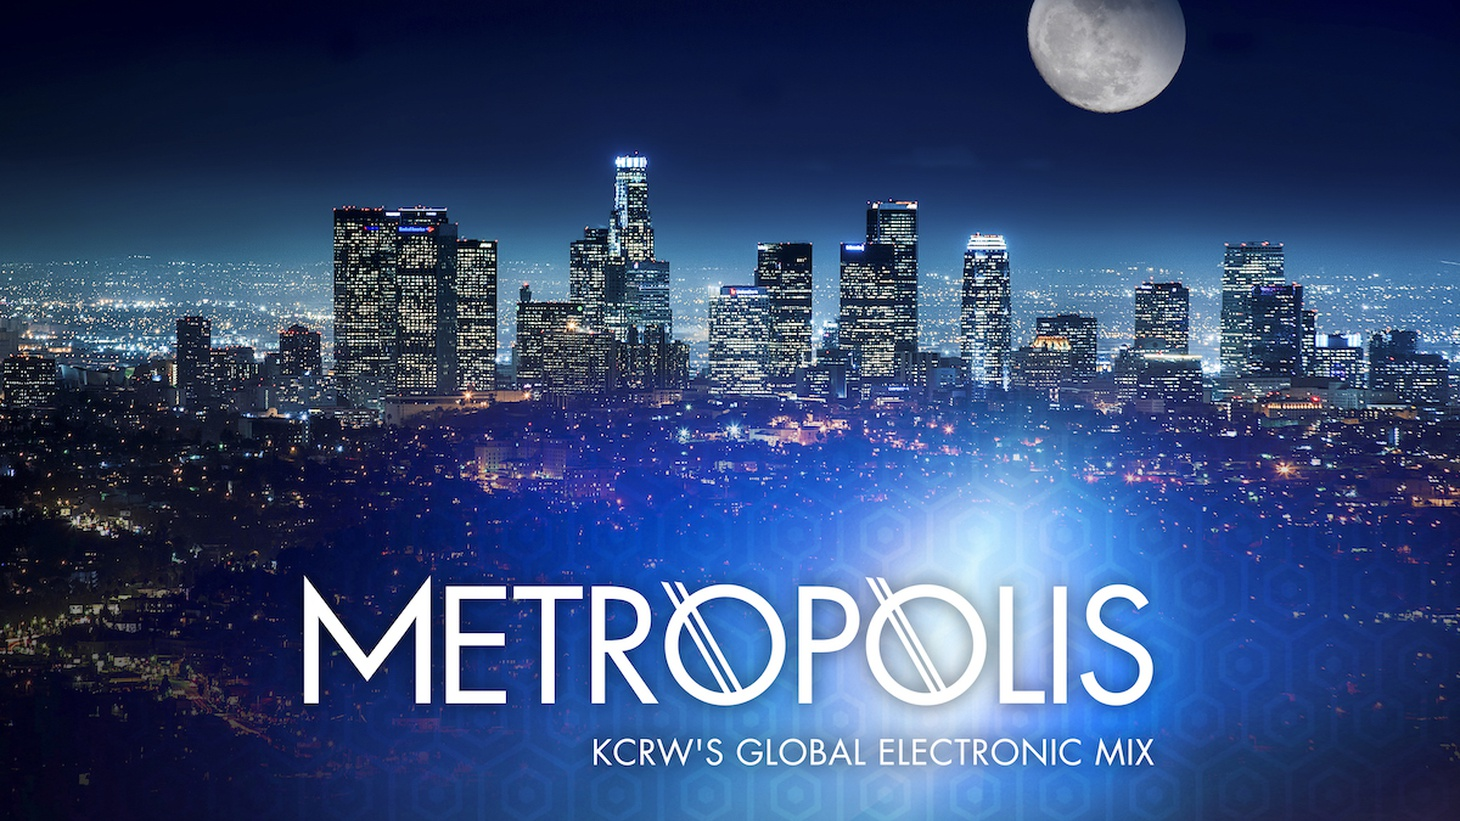 Long time LA dj/producer and Monday Night Social promoter, Freddy Be, stops by Metropolis to discuss Earth Dance and his involvement with the event.  For more info check the website www.earthdance.org